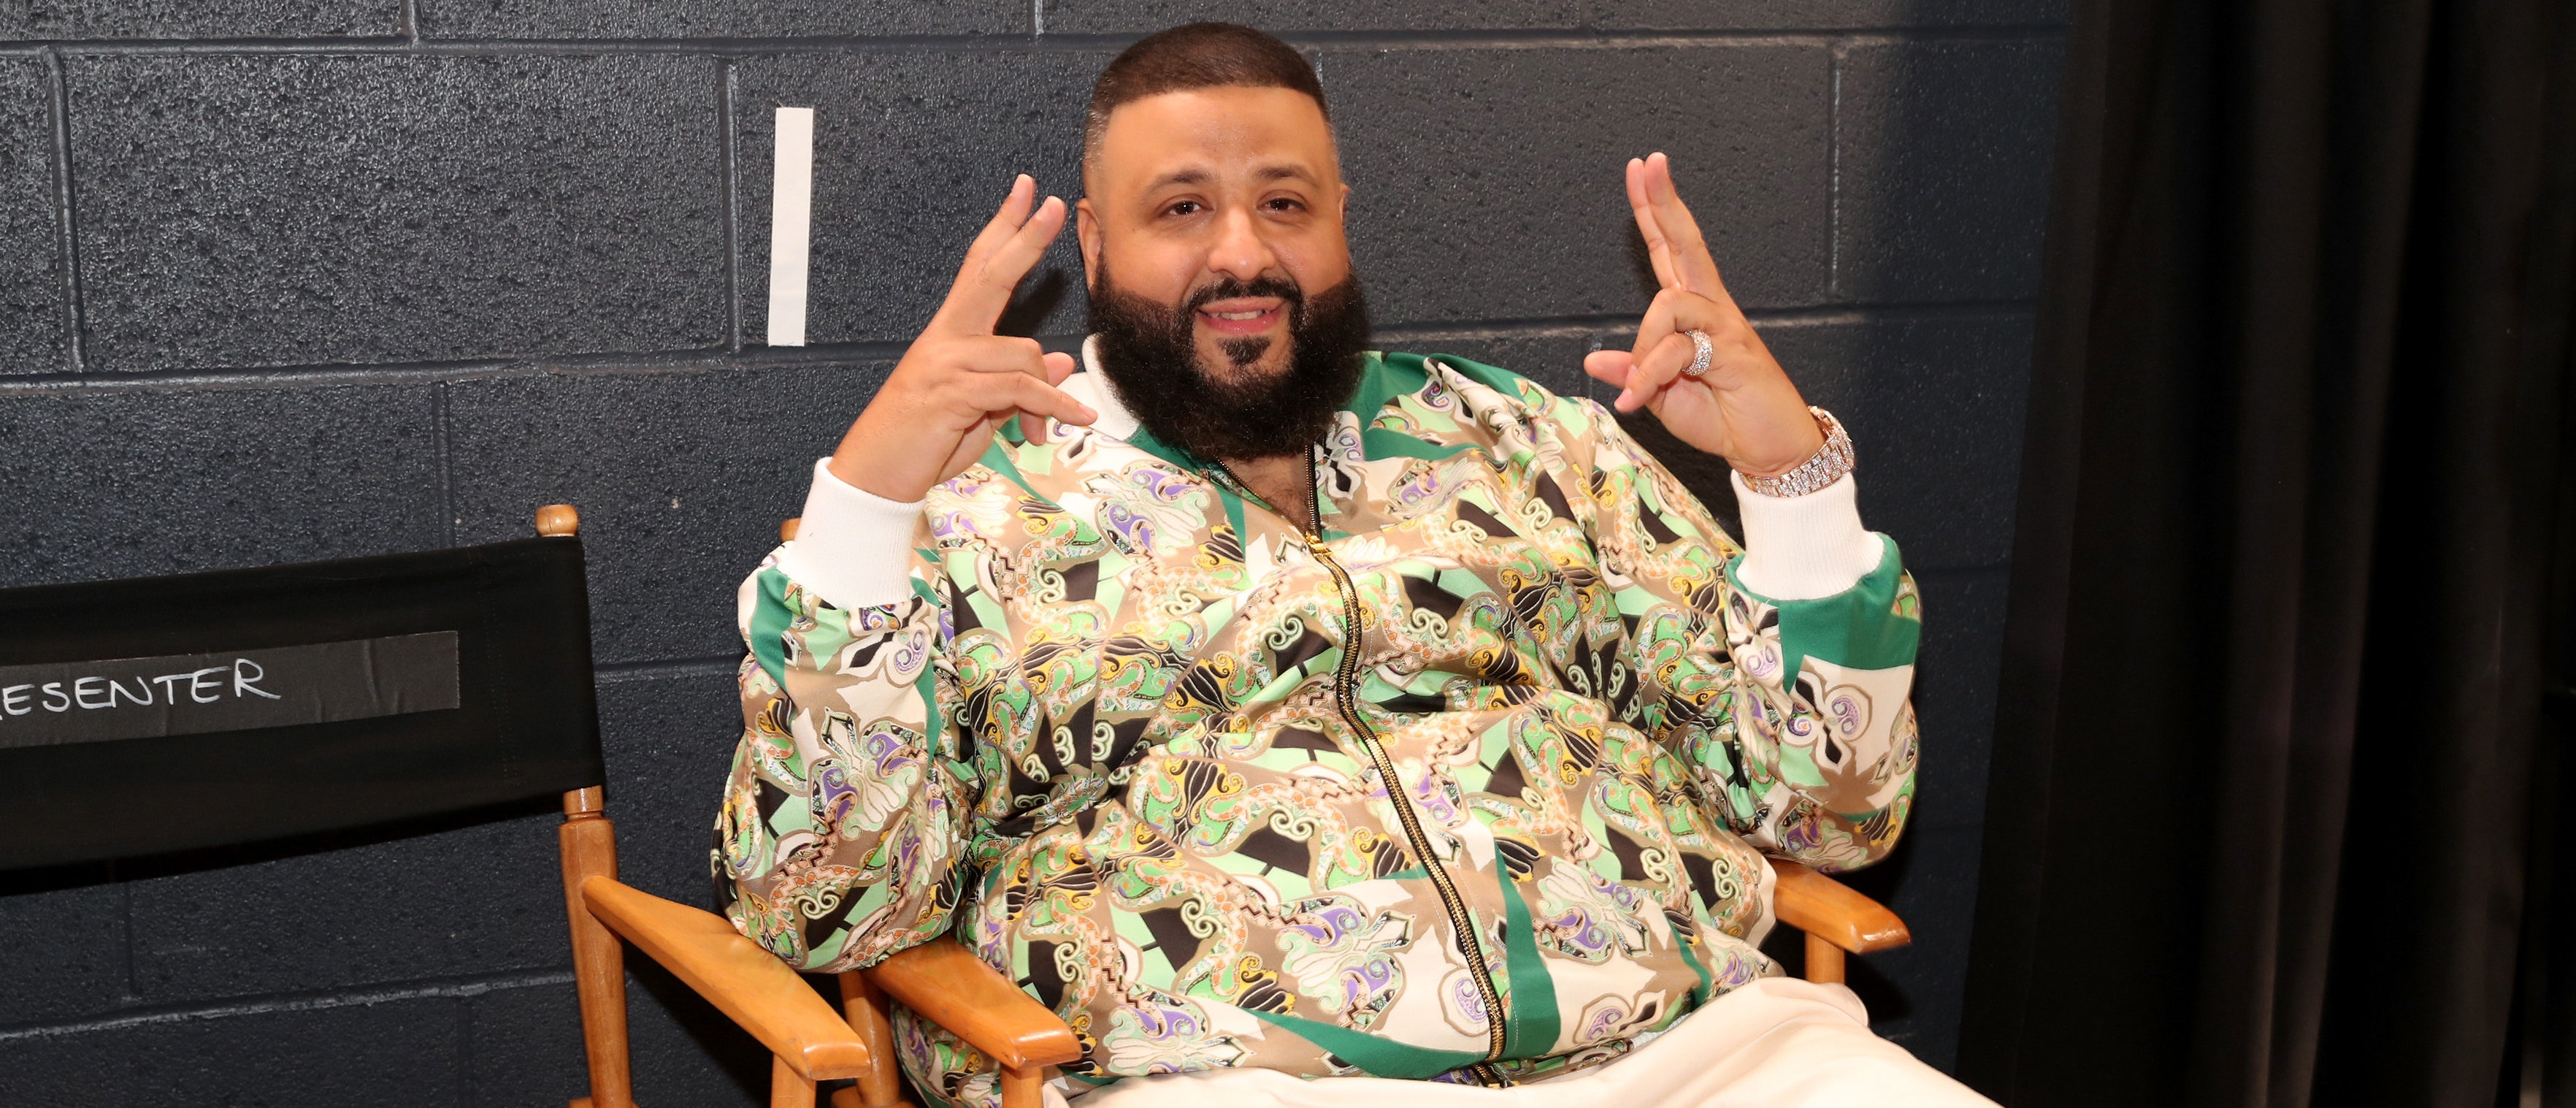 INGLEWOOD, CA - MARCH 11: DJ Khaled attends the 2018 iHeartRadio Music Awards which broadcasted live on TBS, TNT, and truTV at The Forum on March 11, 2018 in Inglewood, California. (Photo by Christopher Polk/Getty Images for iHeartMedia)